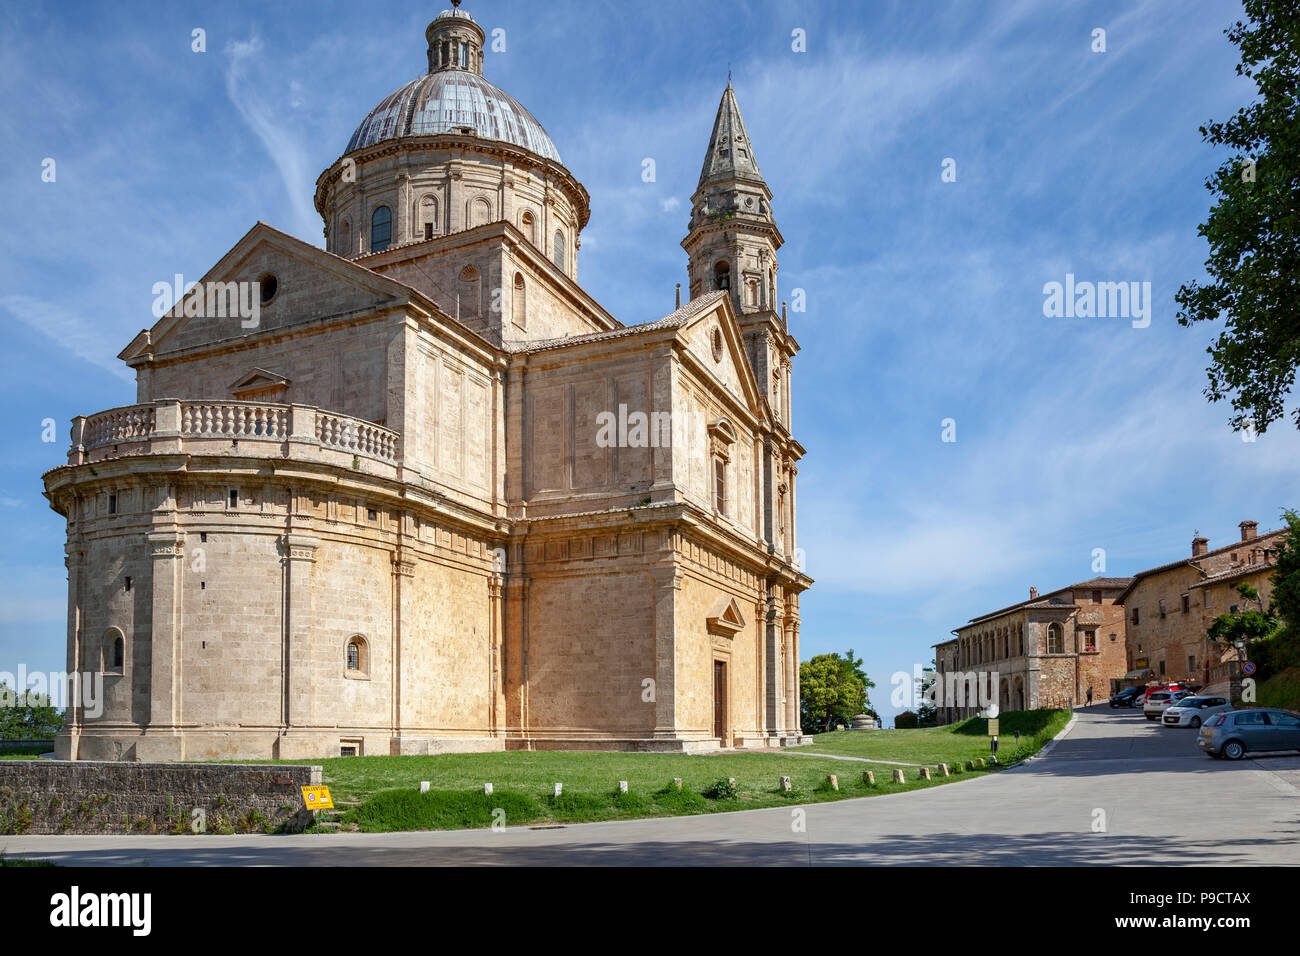 Below Montepulciano, the San Biagio church has been built according a focused Greek cross-shaped plan topped by a dome. - Stock Image